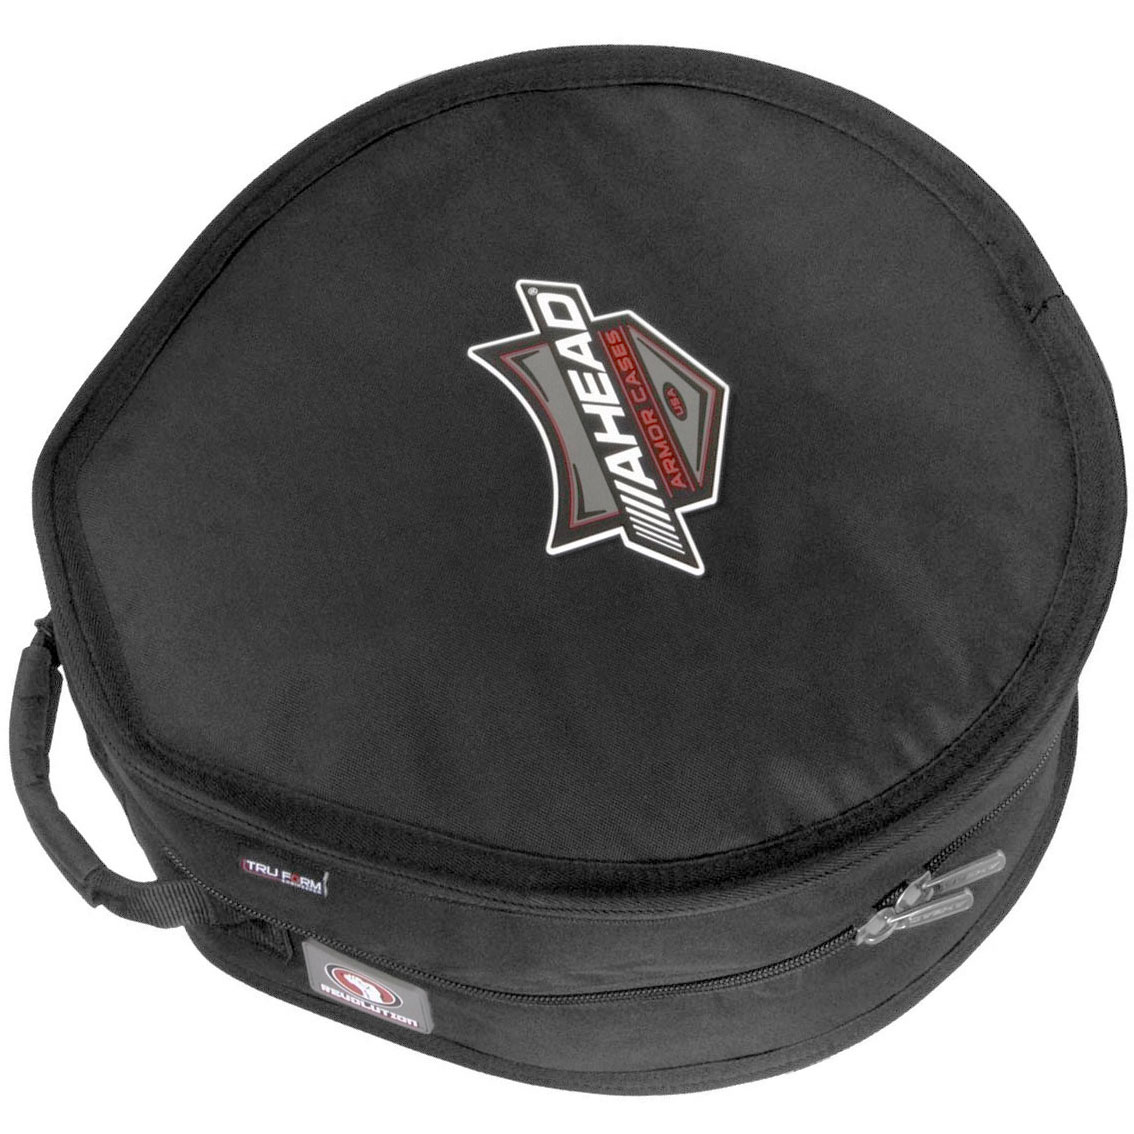 "Ahead 6.5"" (Deep) x 14"" (Diameter) Dyna-Sonic Snare Case"